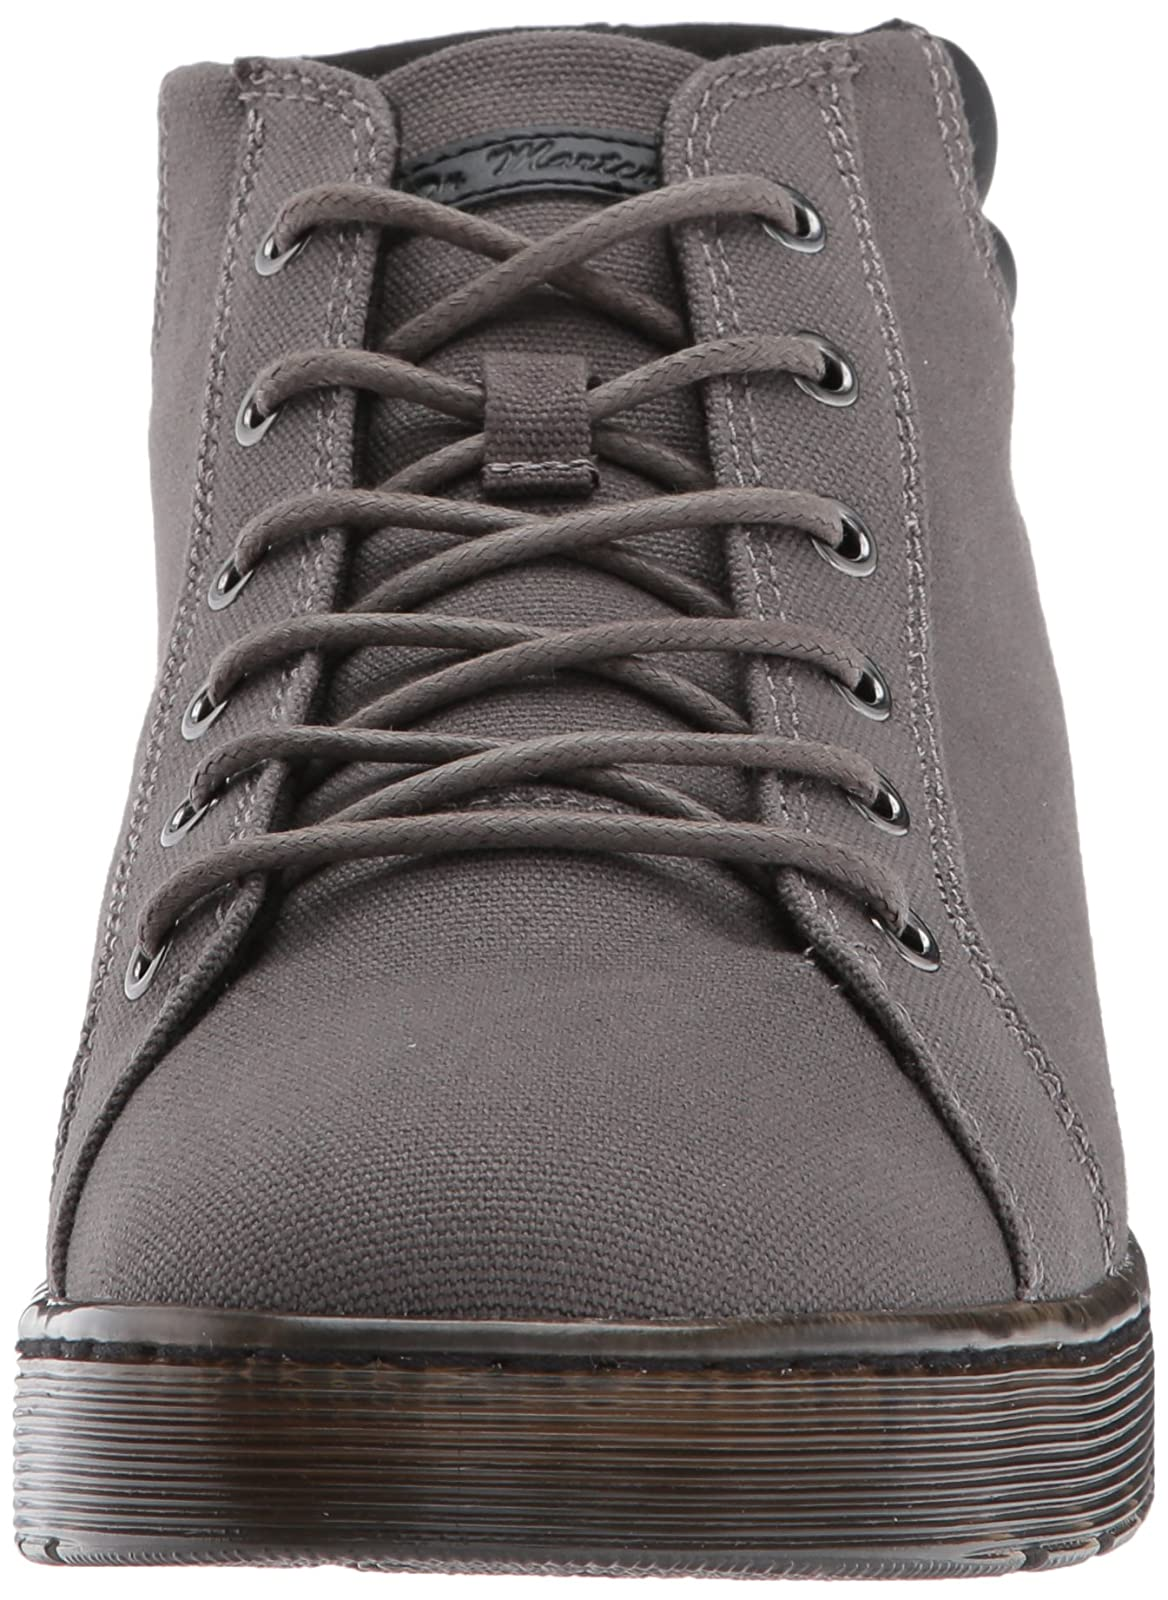 Dr. Martens Men's Plaza Gunmetal Fashion Boot R22864029 - 4